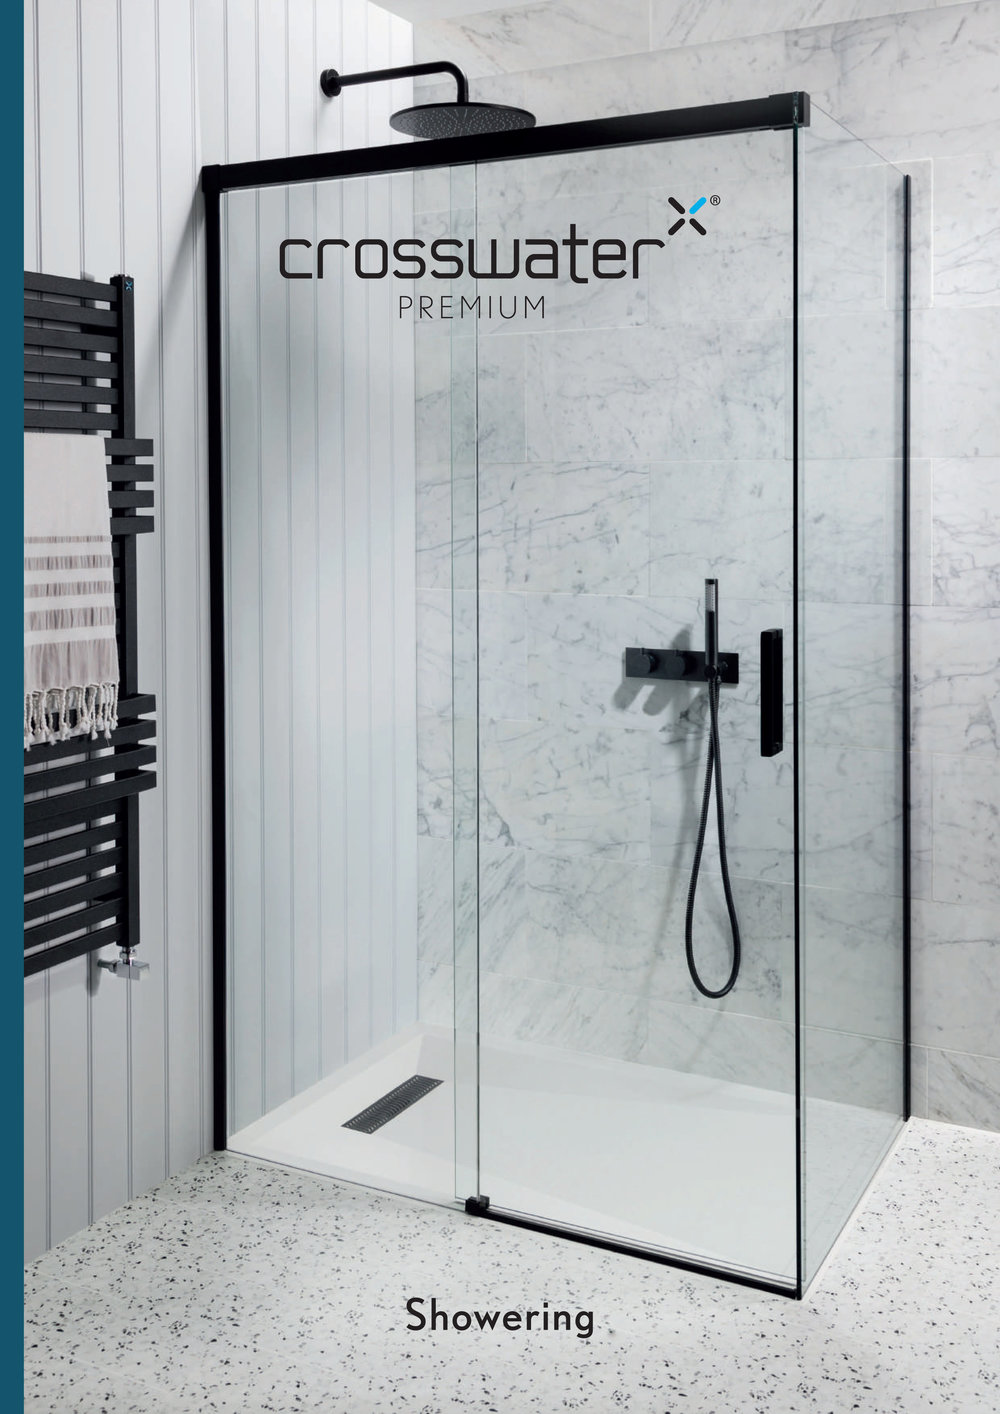 Crosswater Showering Catalogue Waterloo Bathrooms Dublin 2-1.jpg